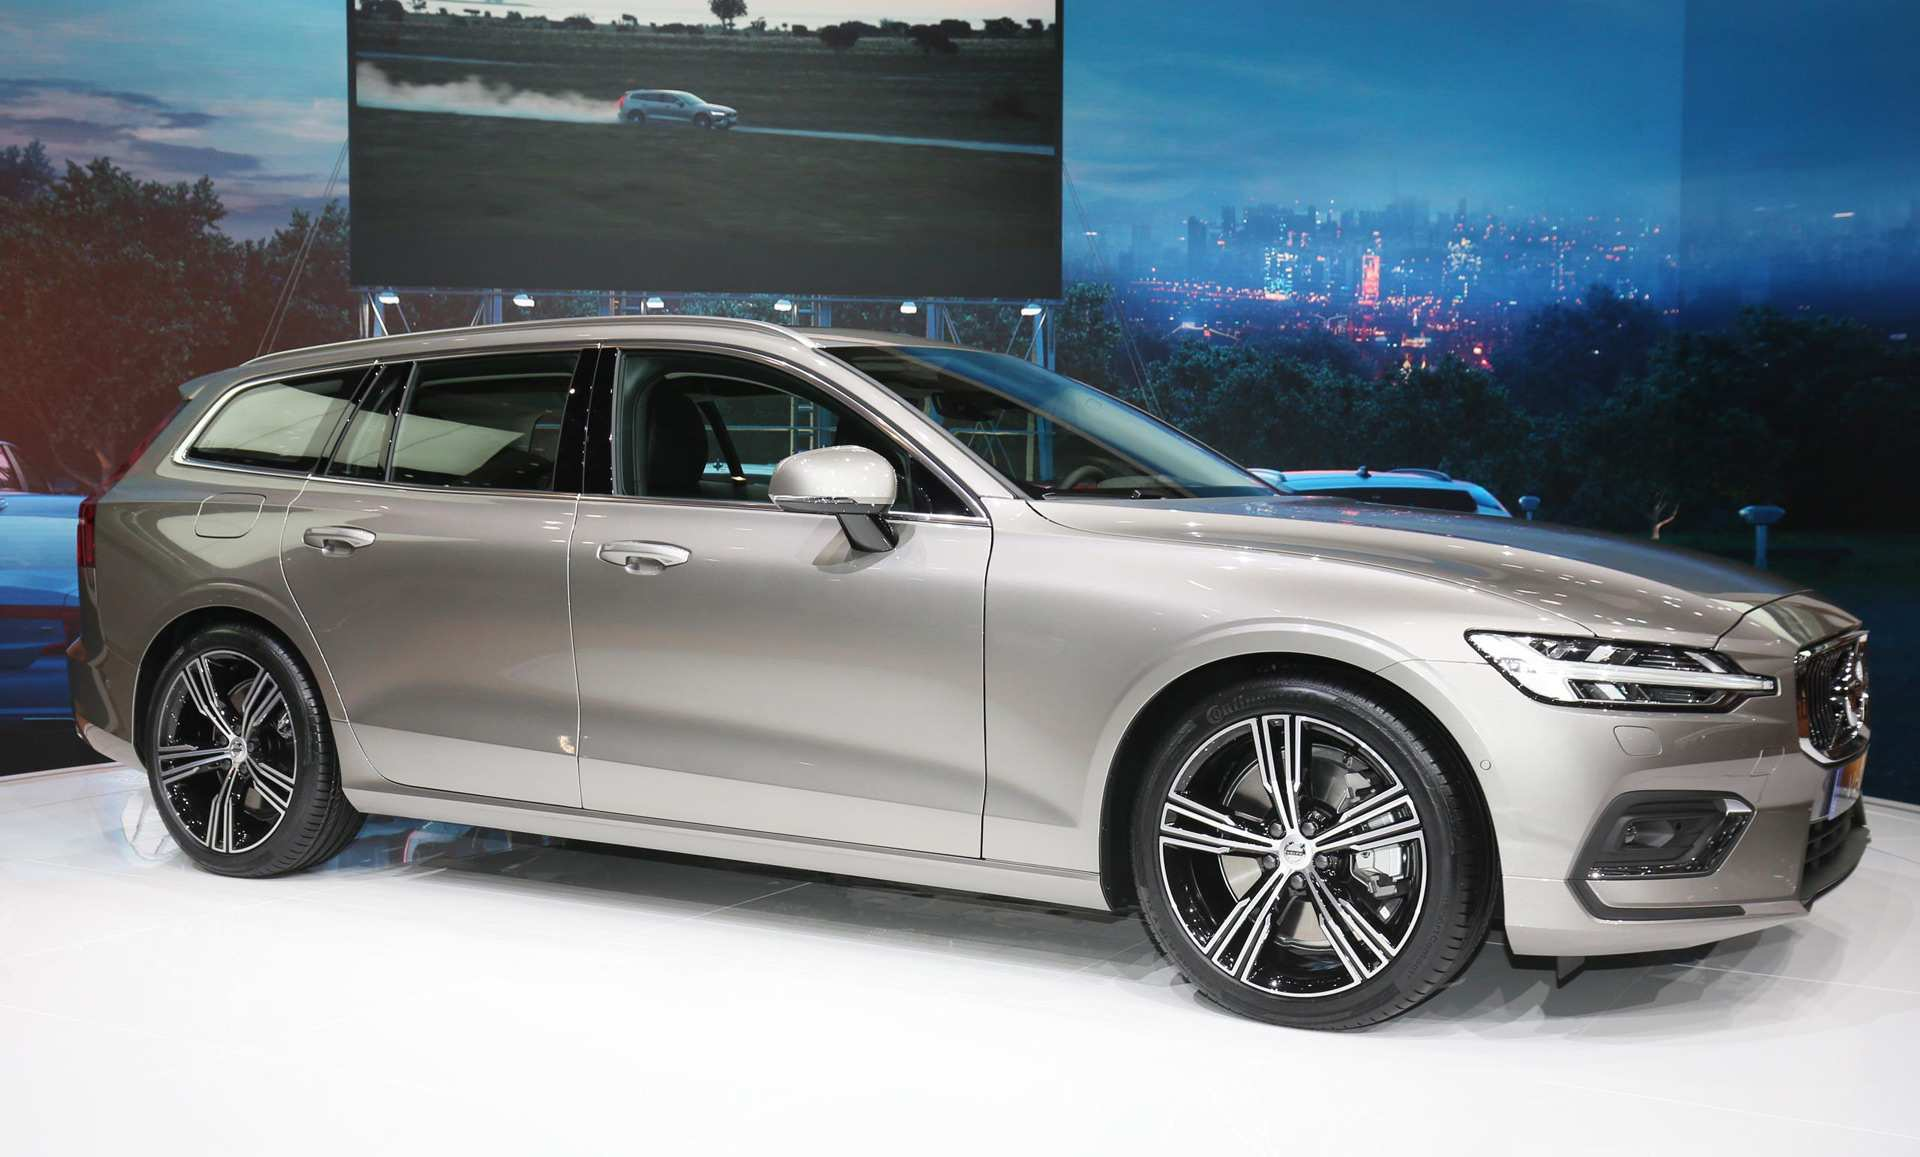 77 New 2019 Volvo Station Wagon Price And Release Date